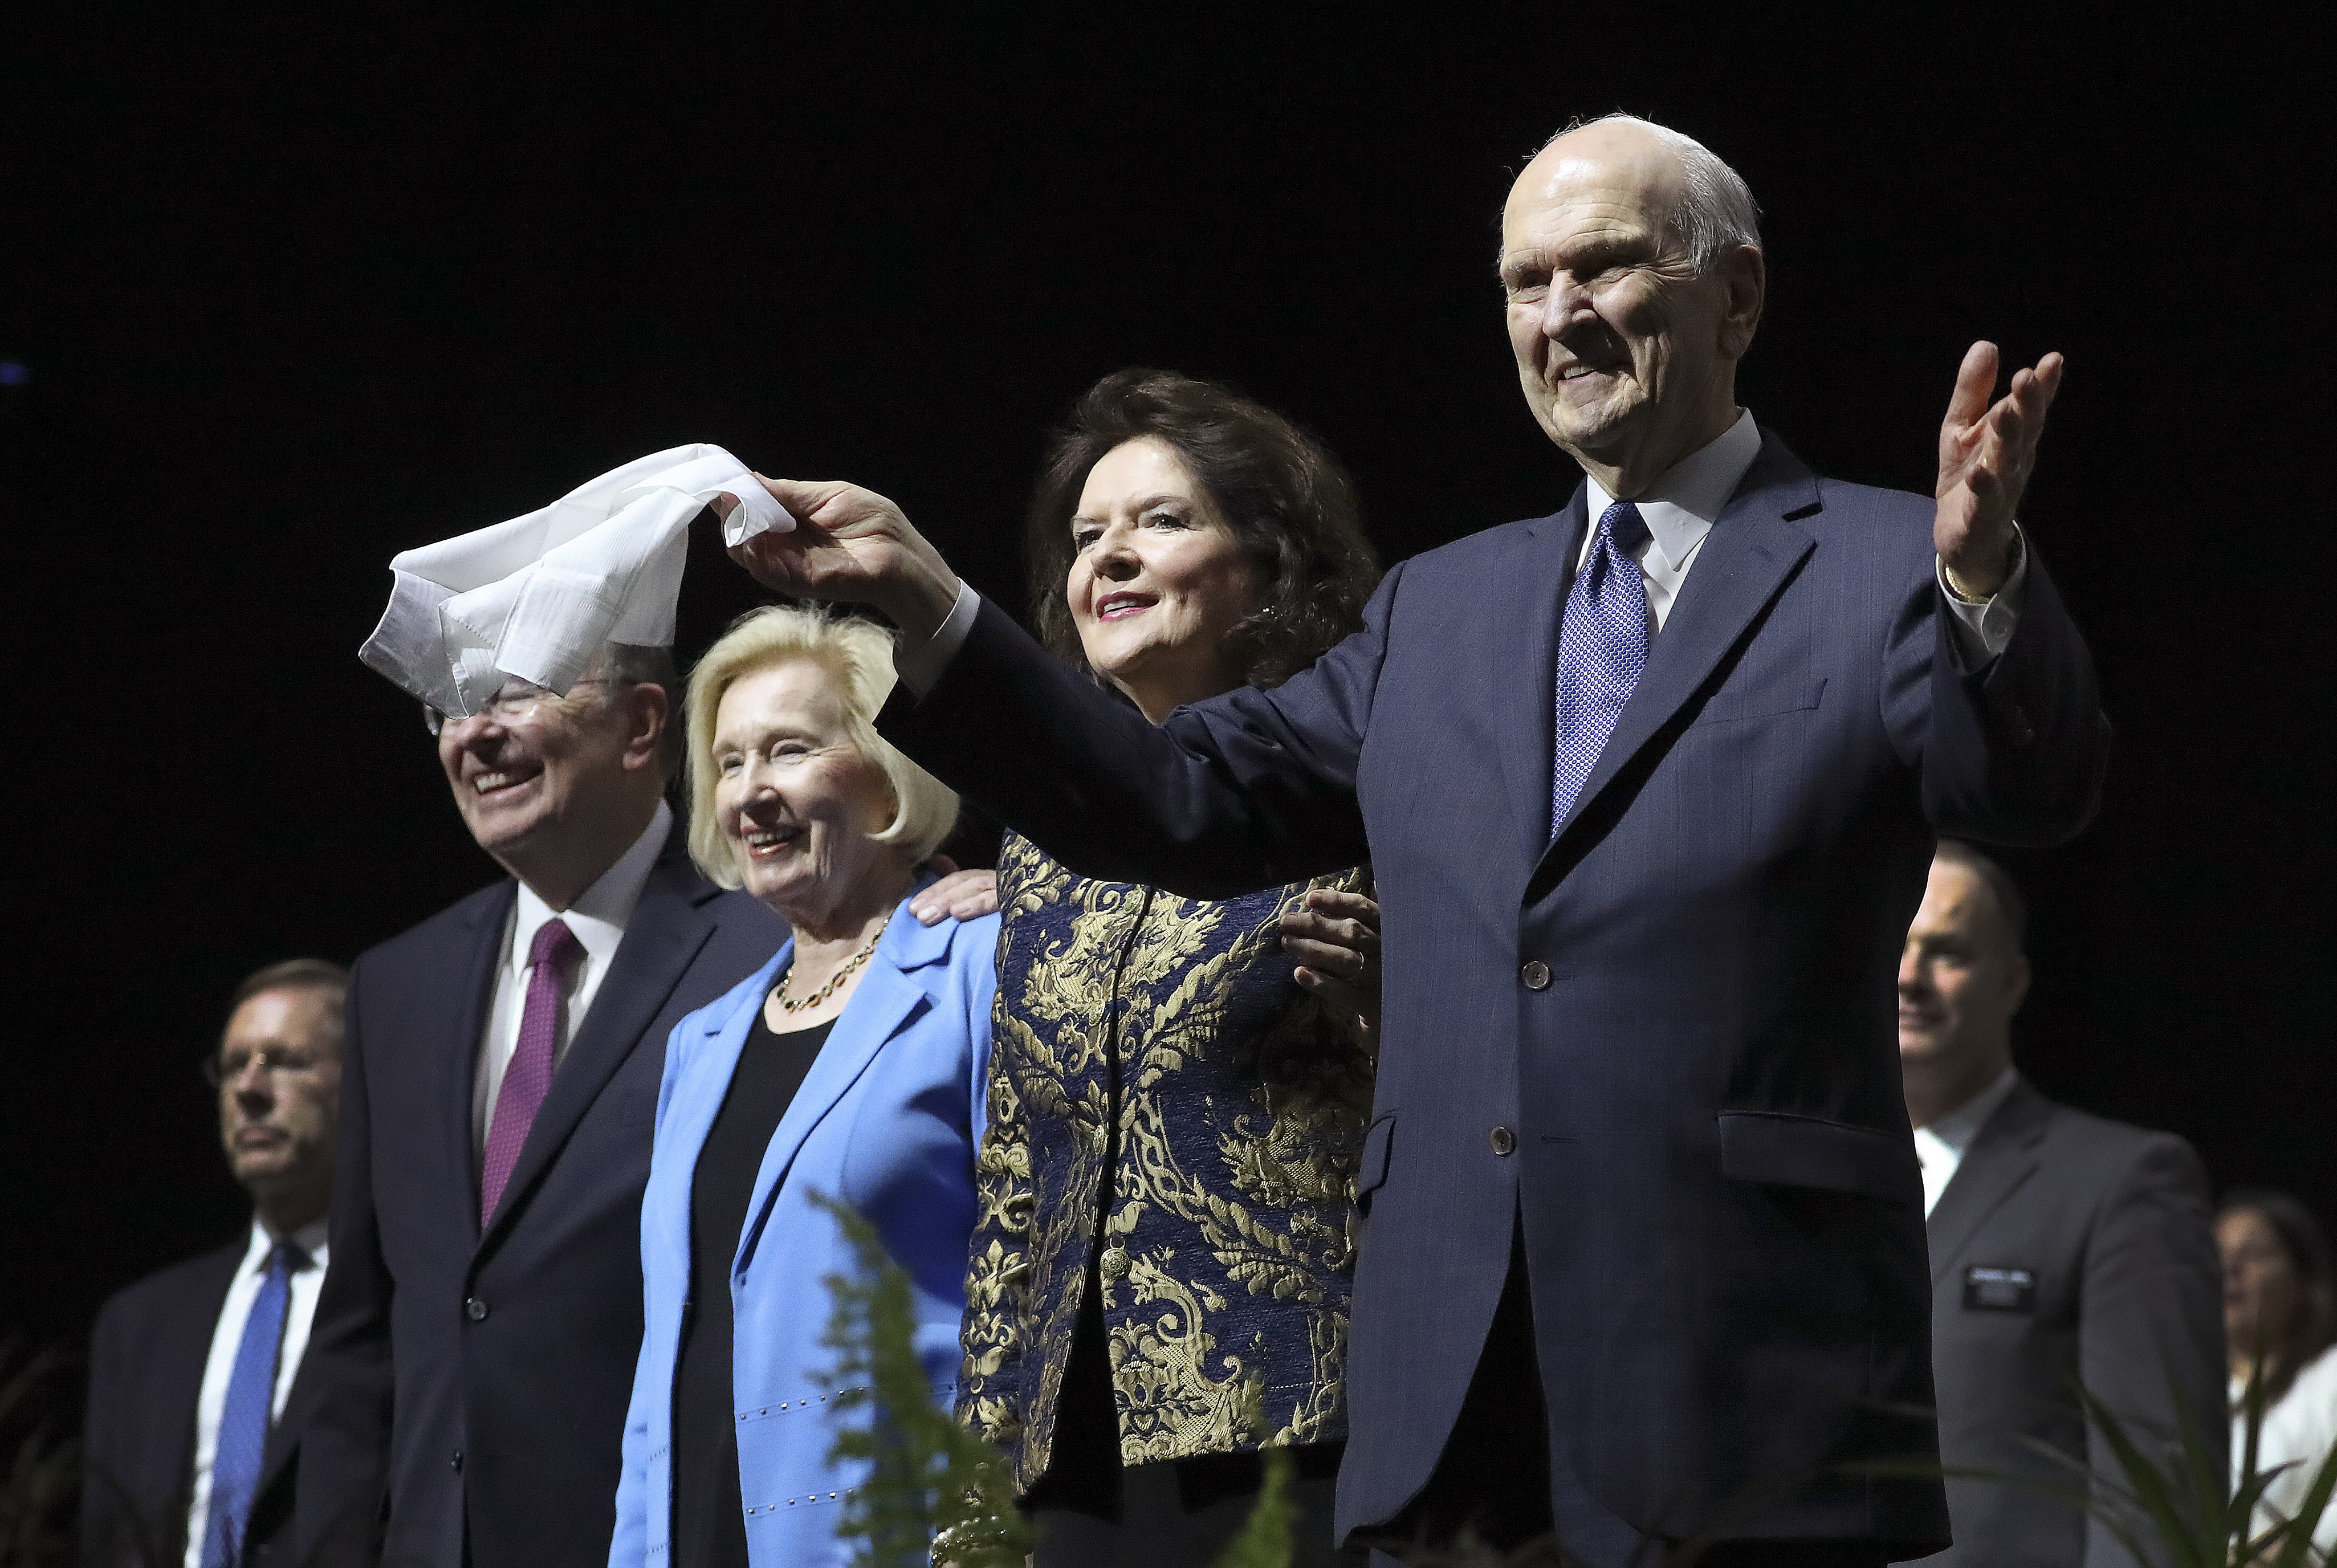 President Russell M. Nelson of The Church of Jesus Christ of Latter-day Saints and his wife, Sister Wendy Nelson, with Elder Quentin L. Cook, Quorum of the Twelve Apostles, and his wife, Sister Mary Cook, wave to attendees after a devotional in Buenos Aires, Argentina, on Wednesday, Aug. 28, 2019.